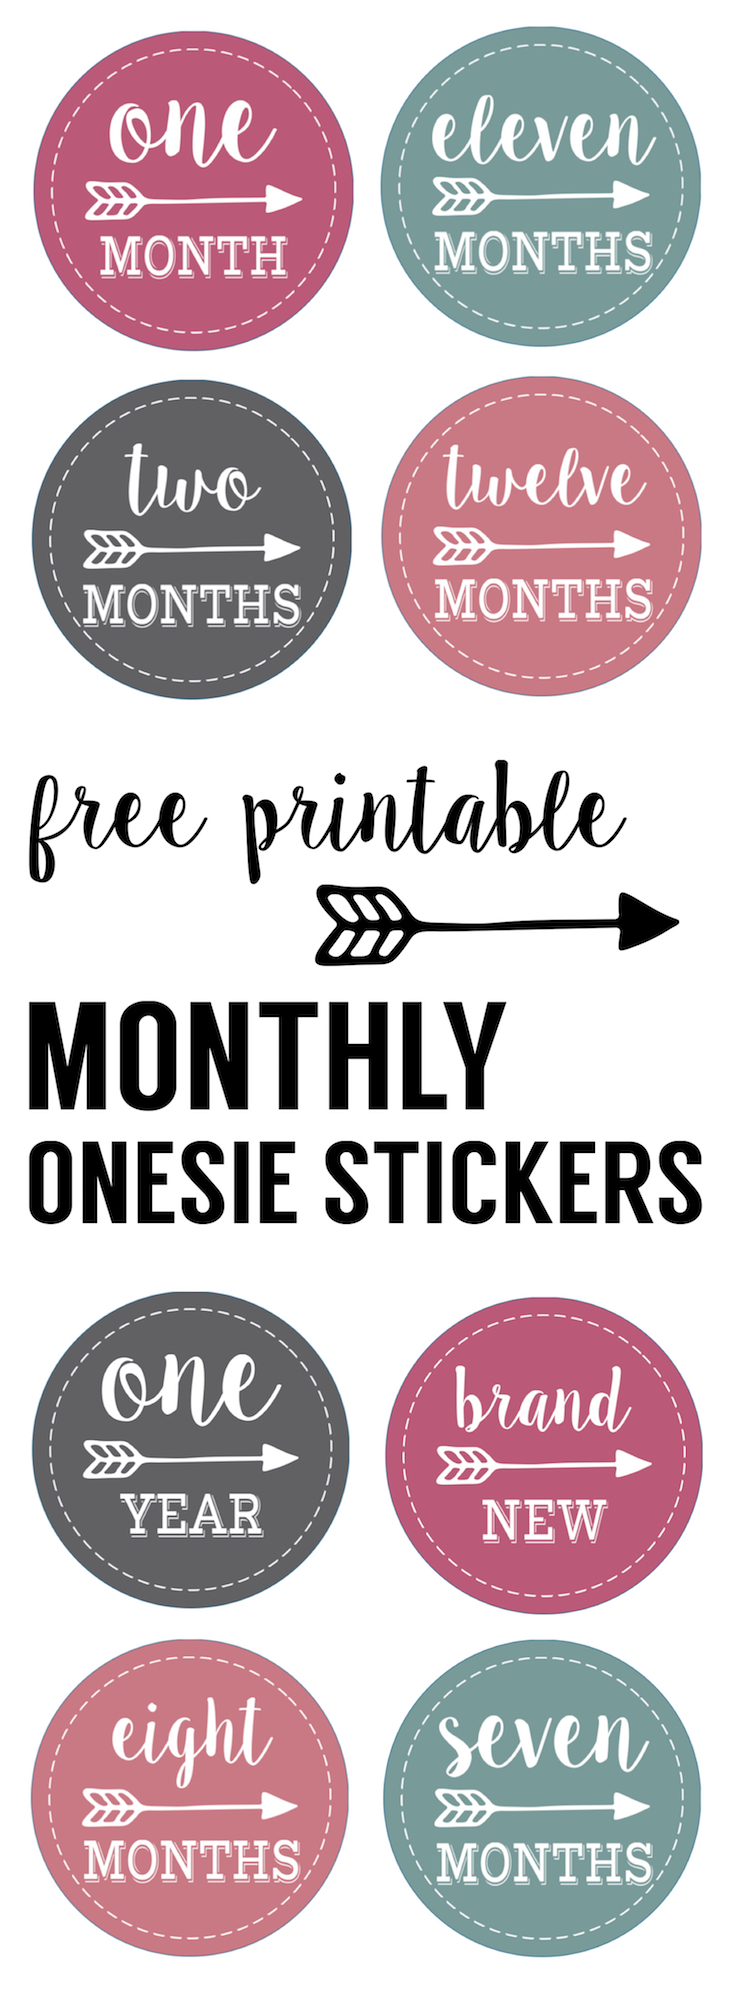 Baby girl monthly onesie stickers free printable. Print free baby onesie stickers and take month by month photos of your newborn. Great baby shower gift.